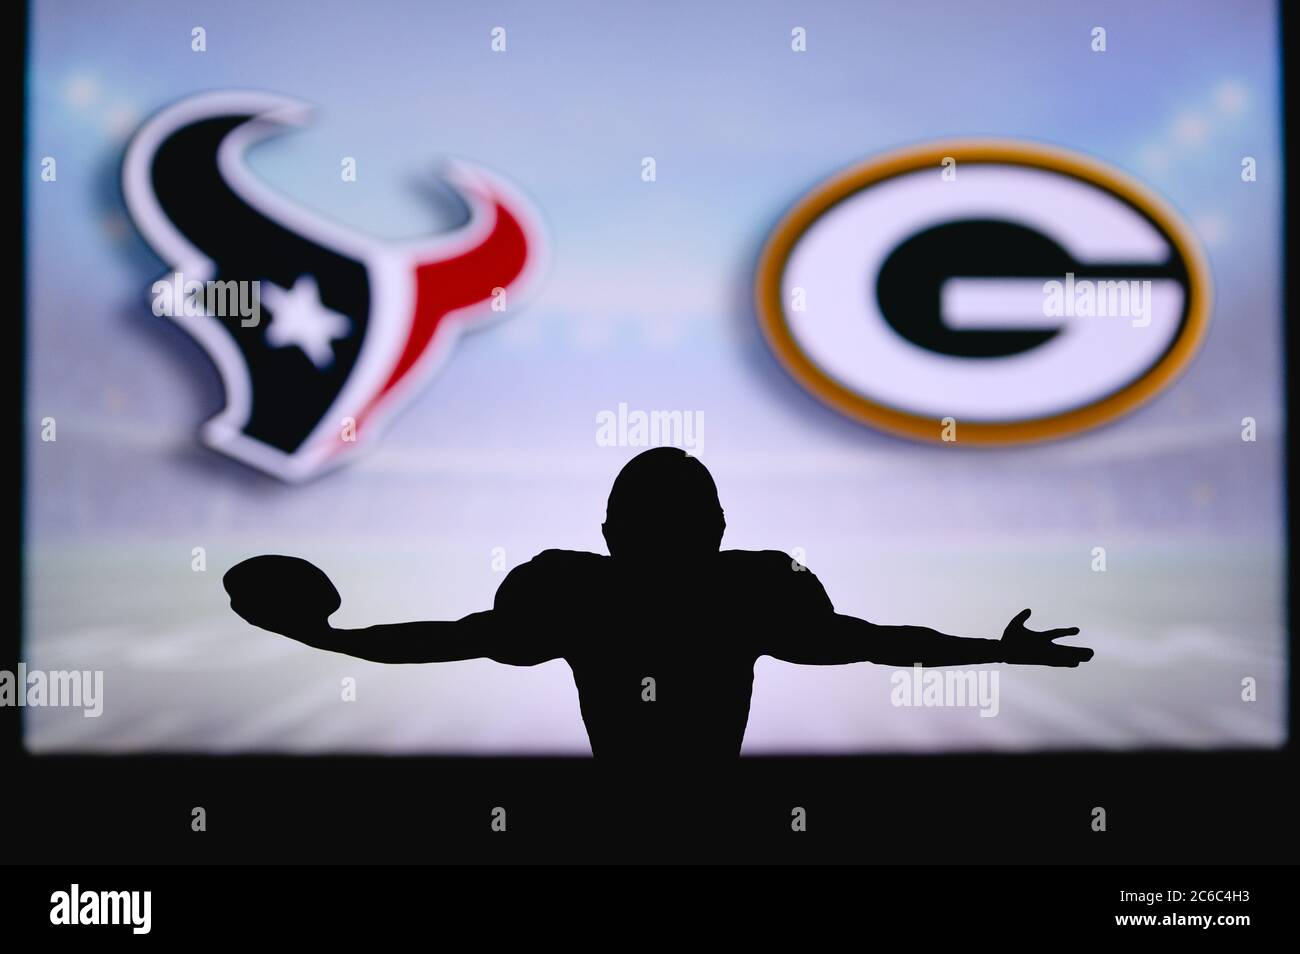 Houston Texans Vs Green Bay Packers Nfl Game American Football League Match Silhouette Of Professional Player Celebrate Touch Down Screen In Back Stock Photo Alamy